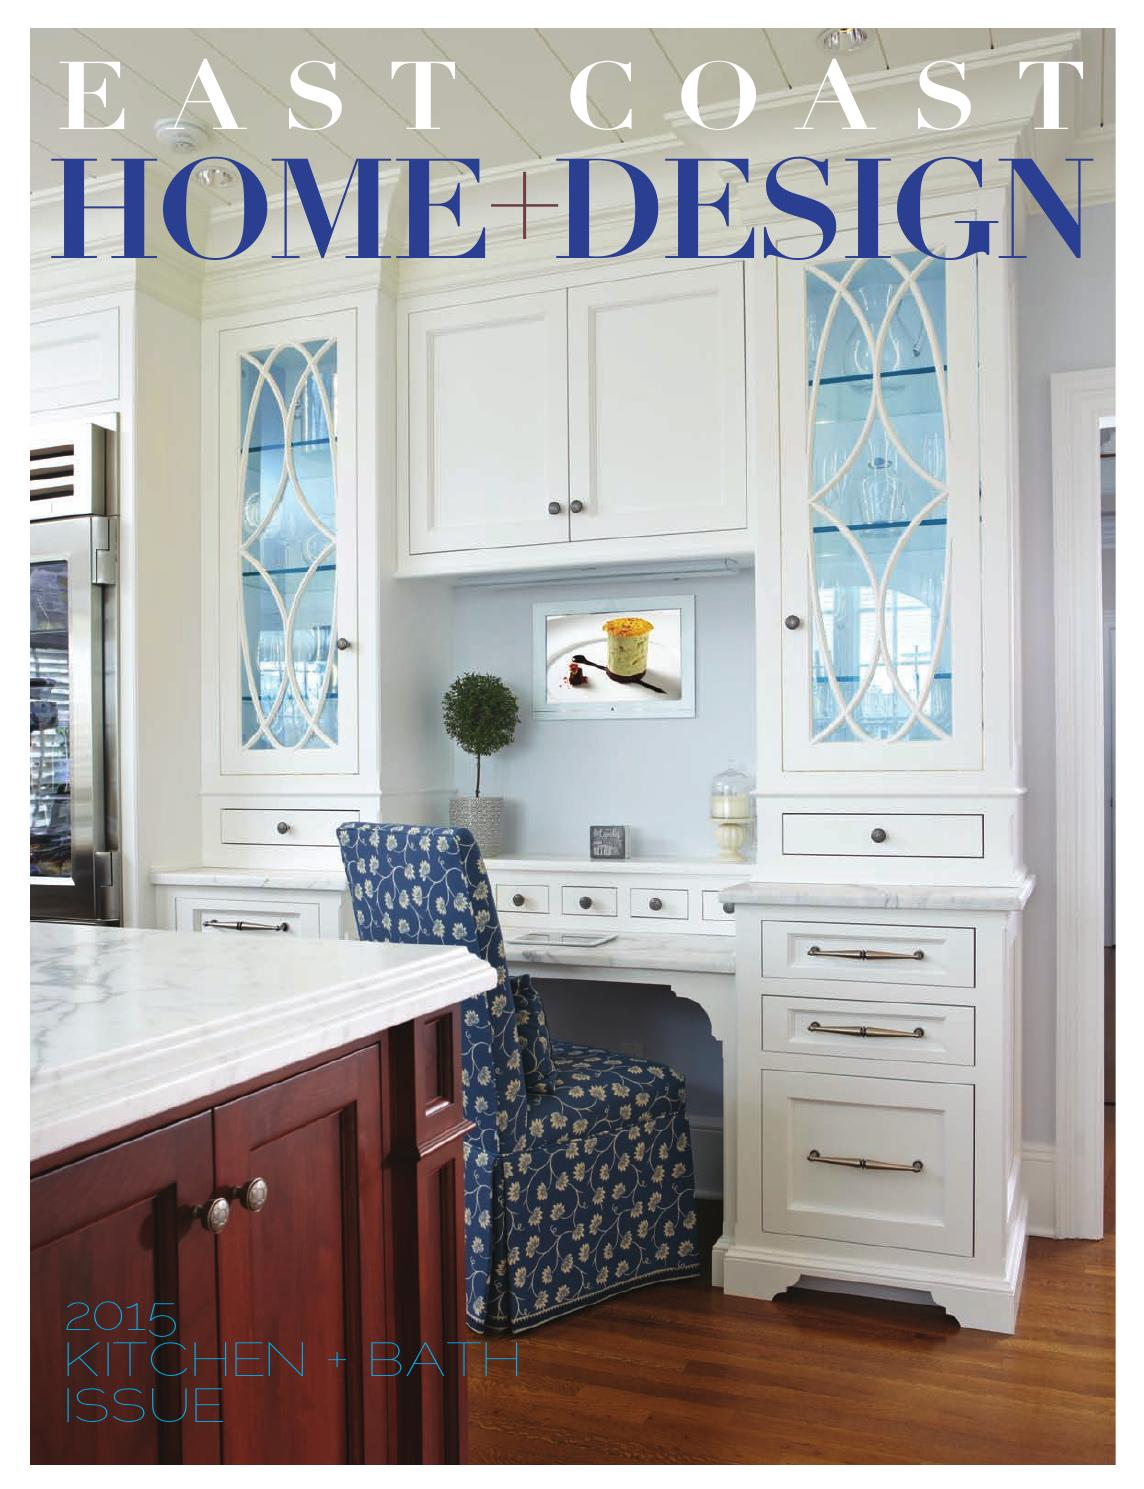 2015 Annual Kitchen + Bath Issue by East Coast Home Publishing - issuu